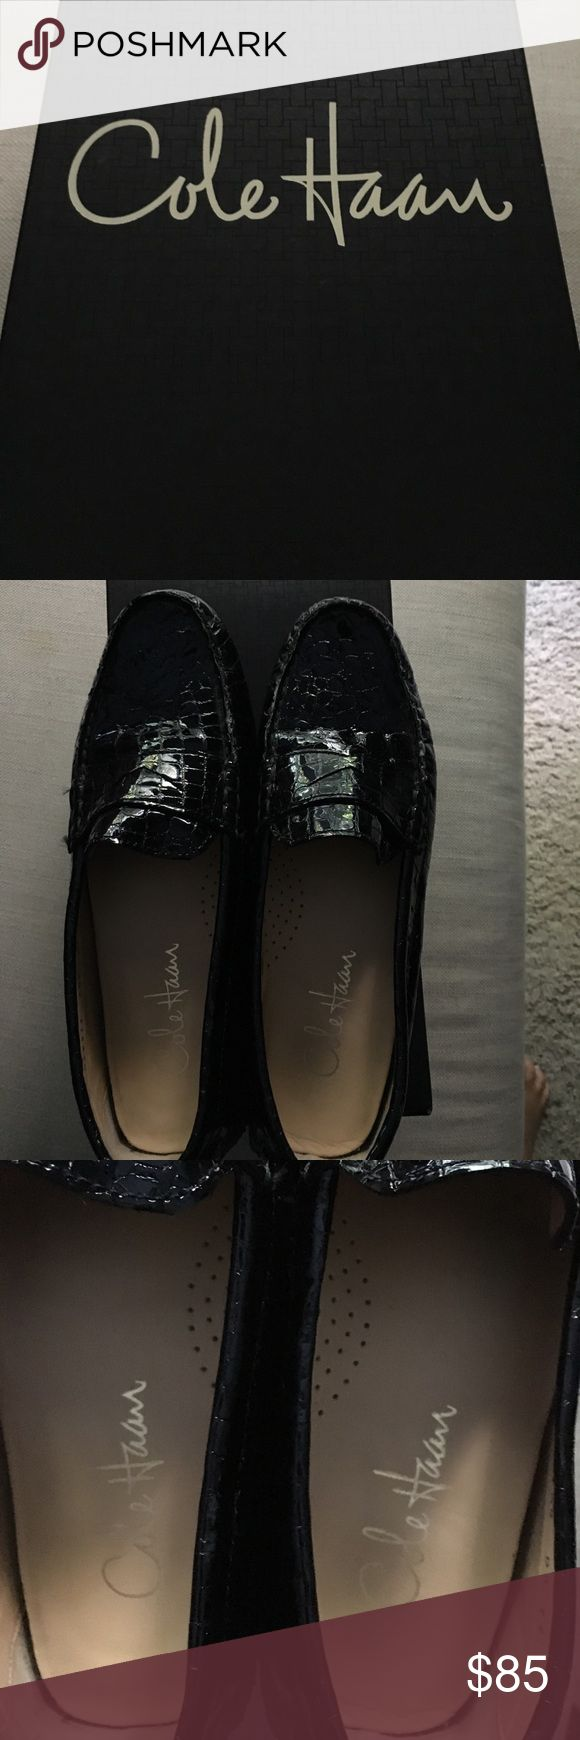 COLE HAAN LOAFERS COLE HAAN BLACK PATENT LEATHER LOAFERS.  Perfect condition.  Nike air technology.  Worn only once or twice.  In the box with bag. Penny/ Driver croc Cole Haan Shoes Flats & Loafers